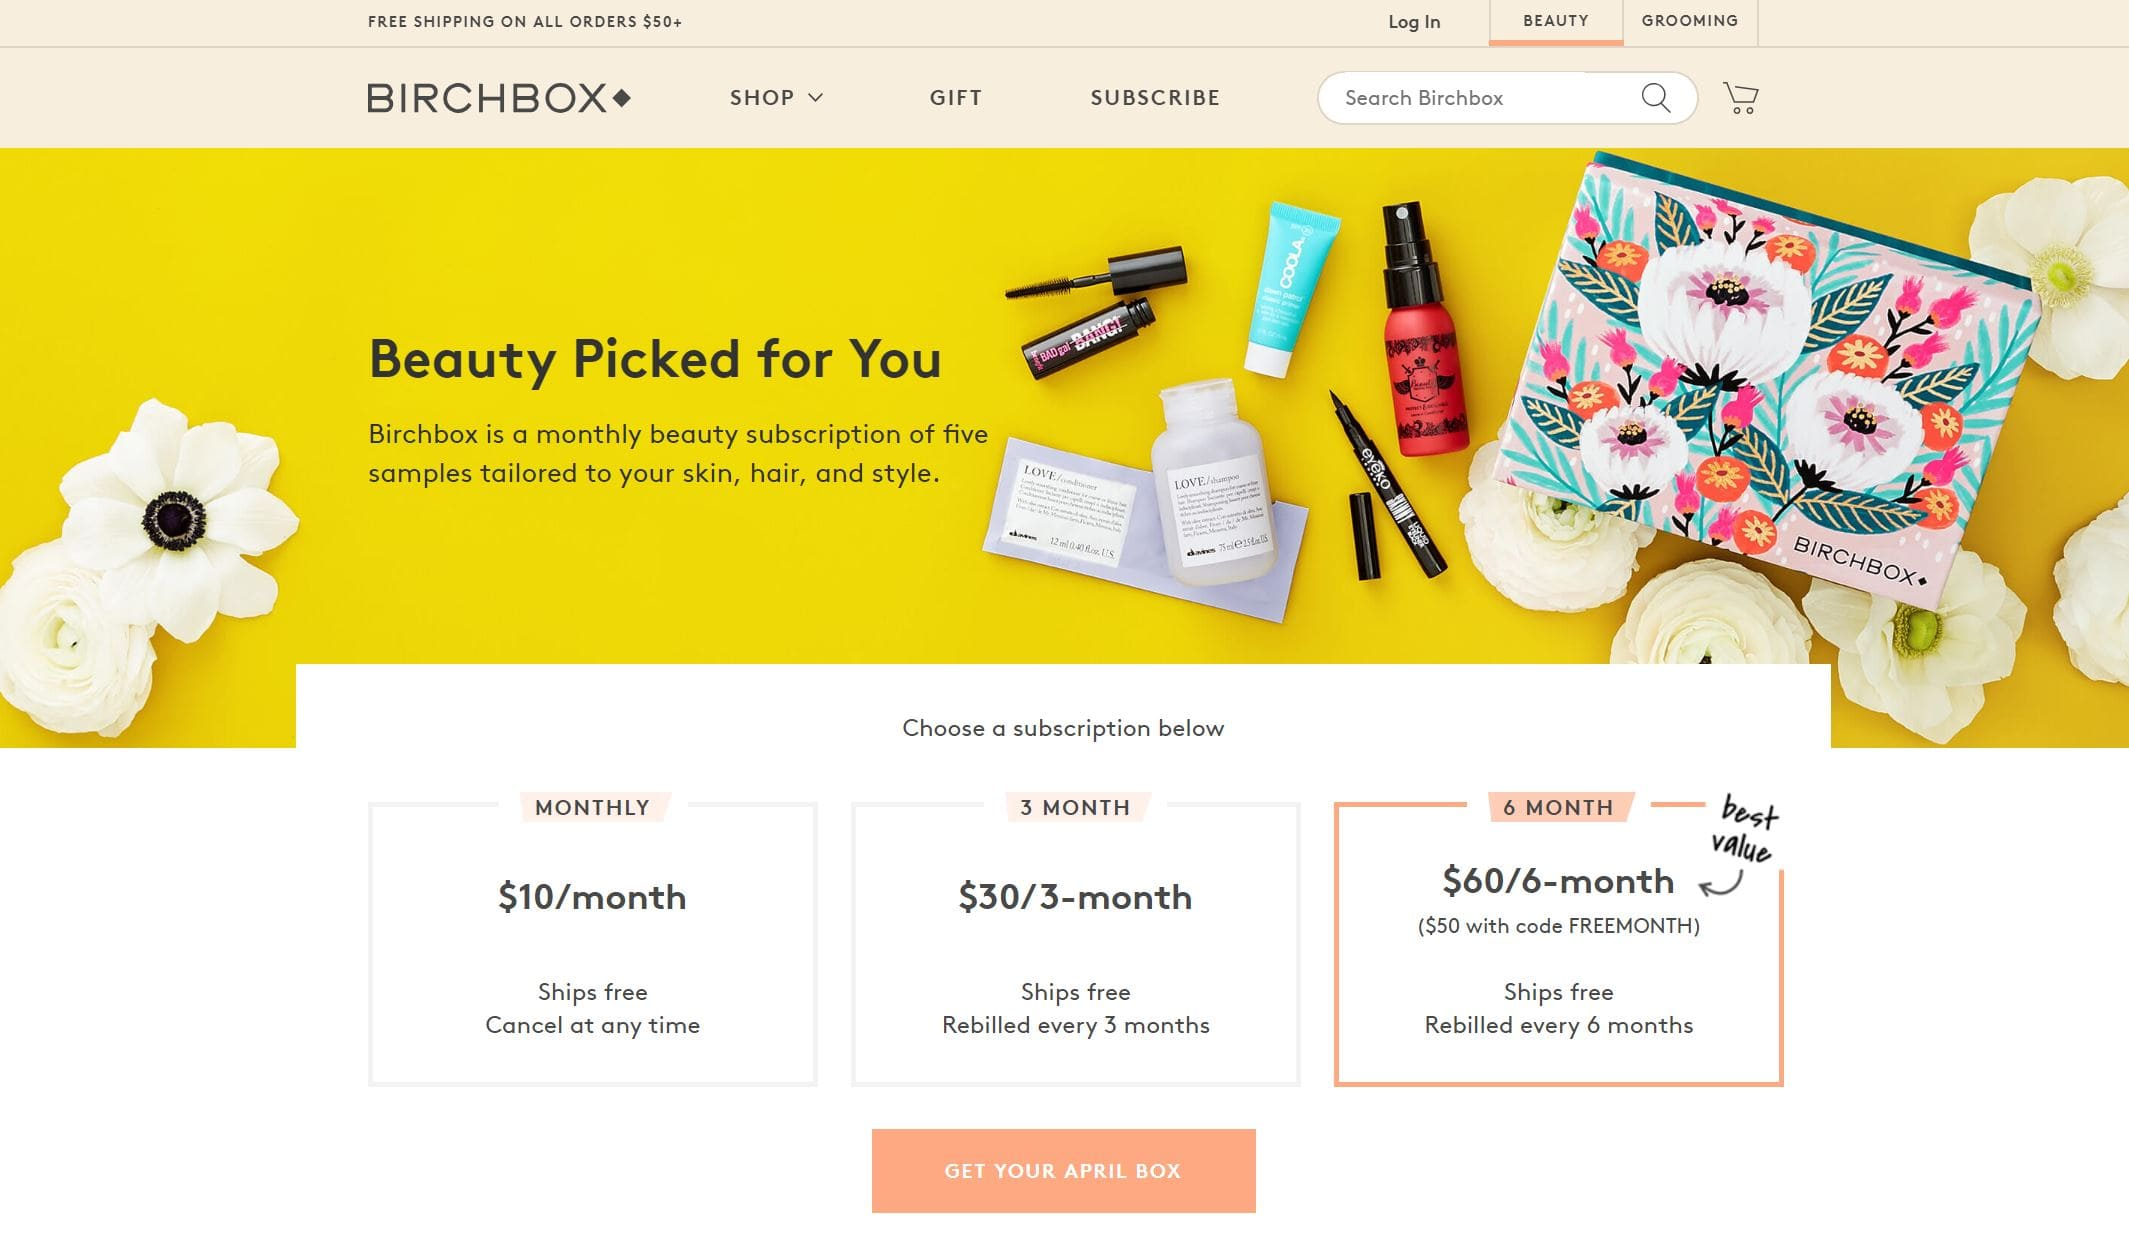 birchbox landing page screenshot